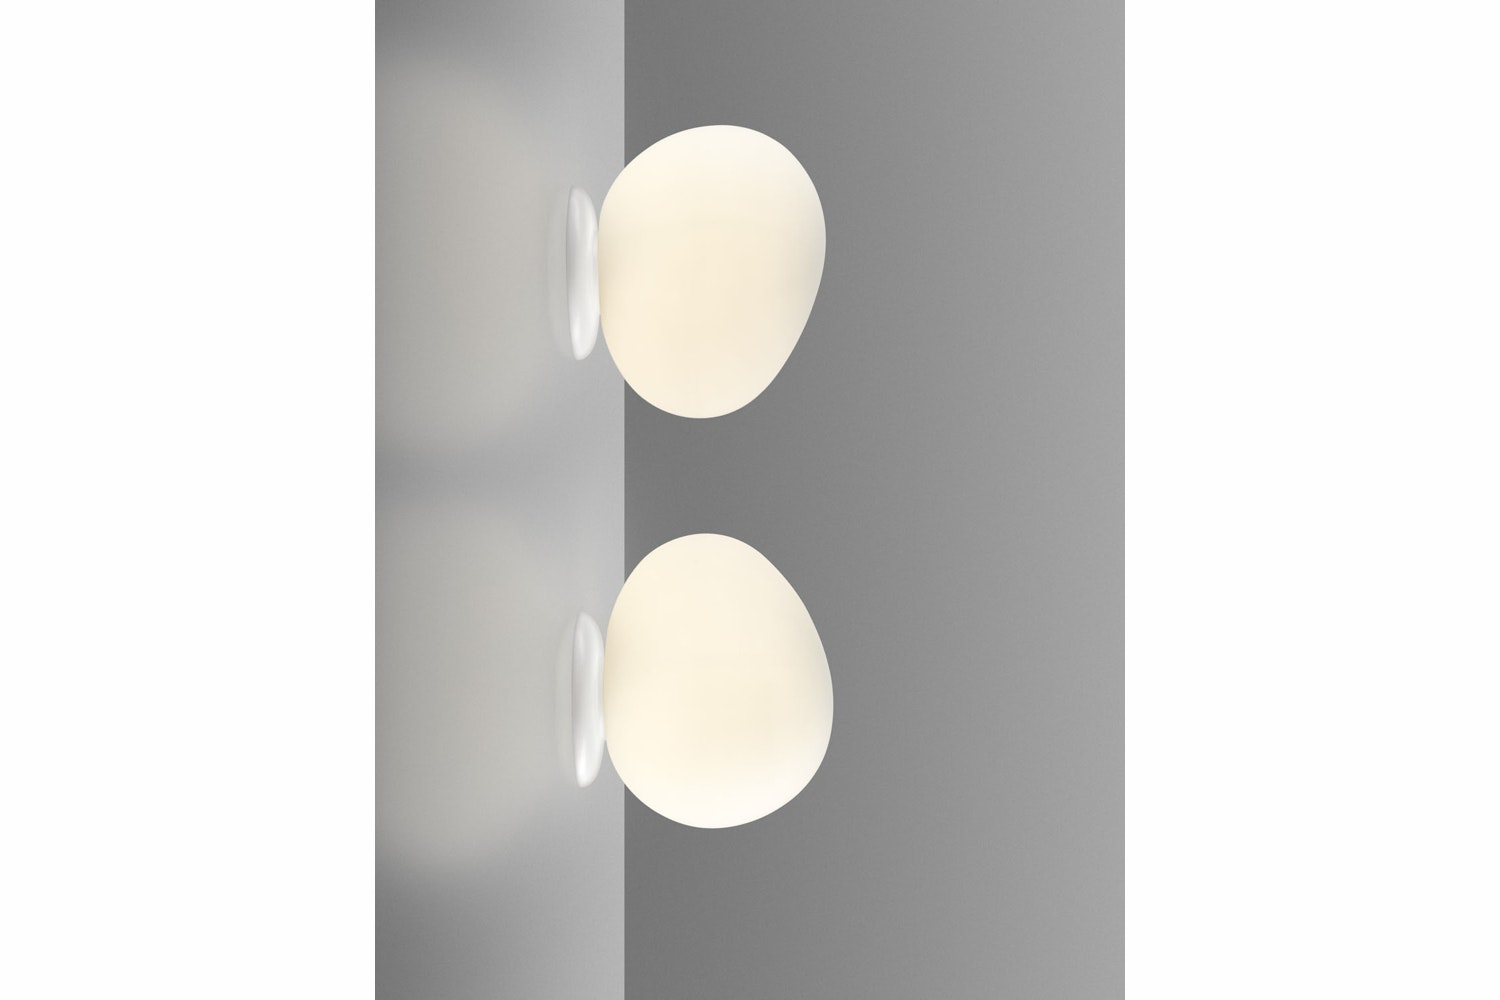 Gregg Ceiling/Wall Lamp by Ludovica & Roberto Palomba for Foscarini